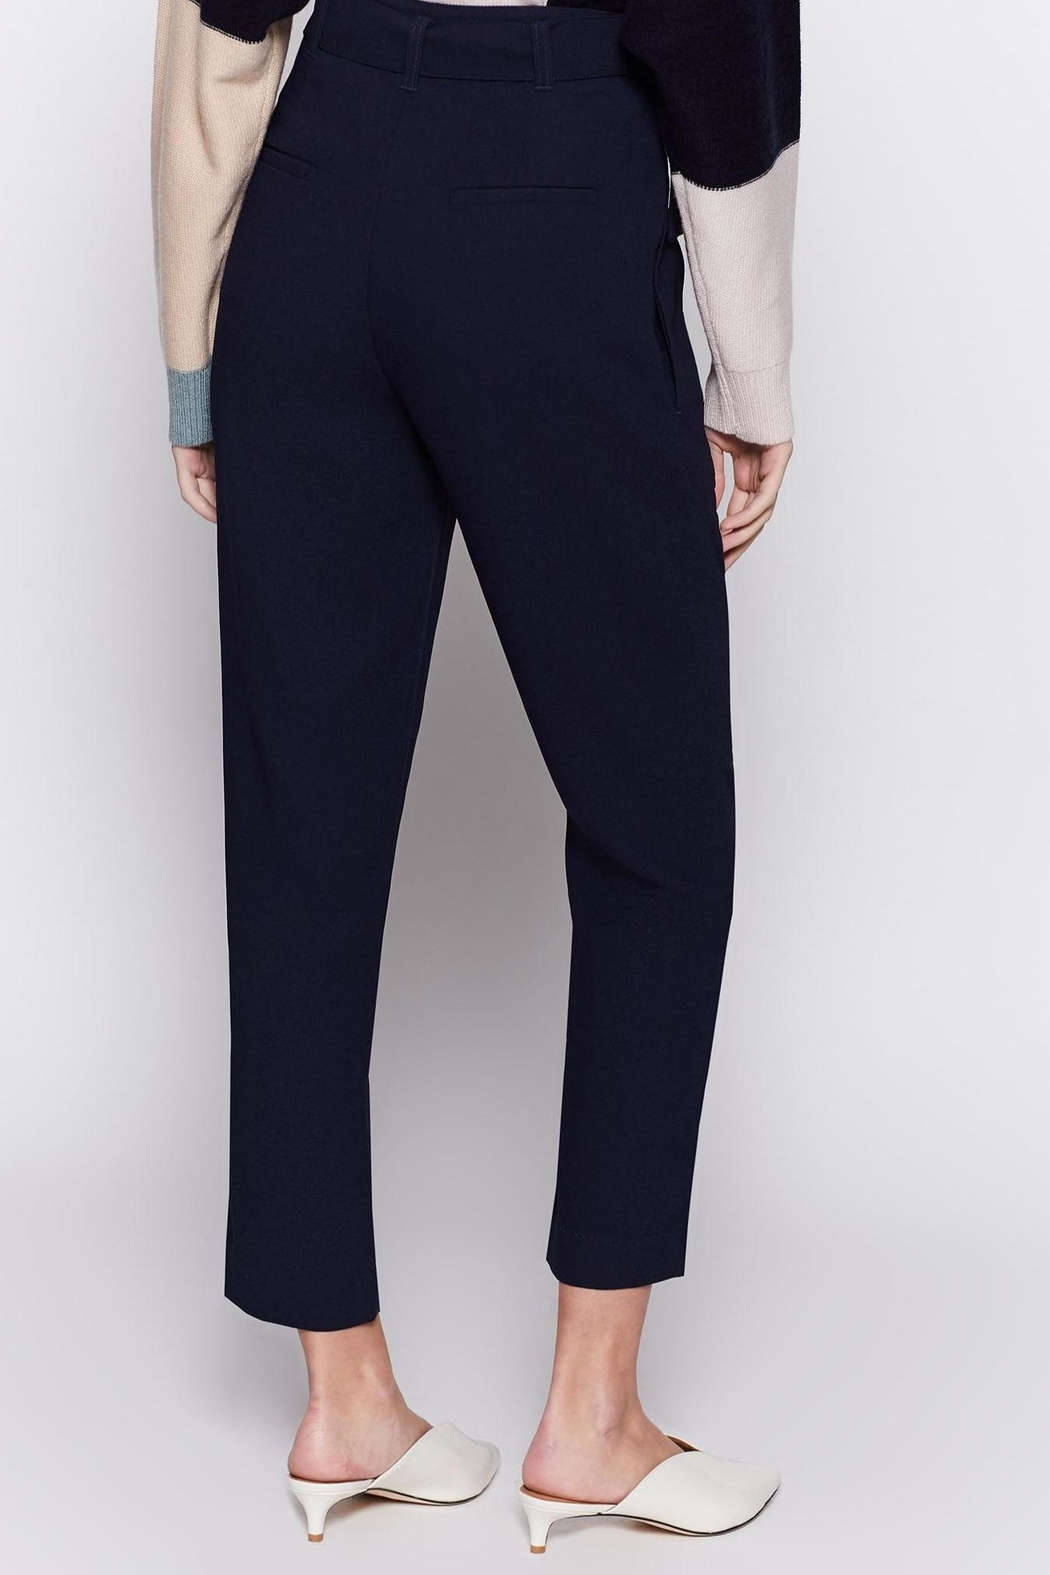 Joie Ianna Pants Midnight - Back Cropped Image